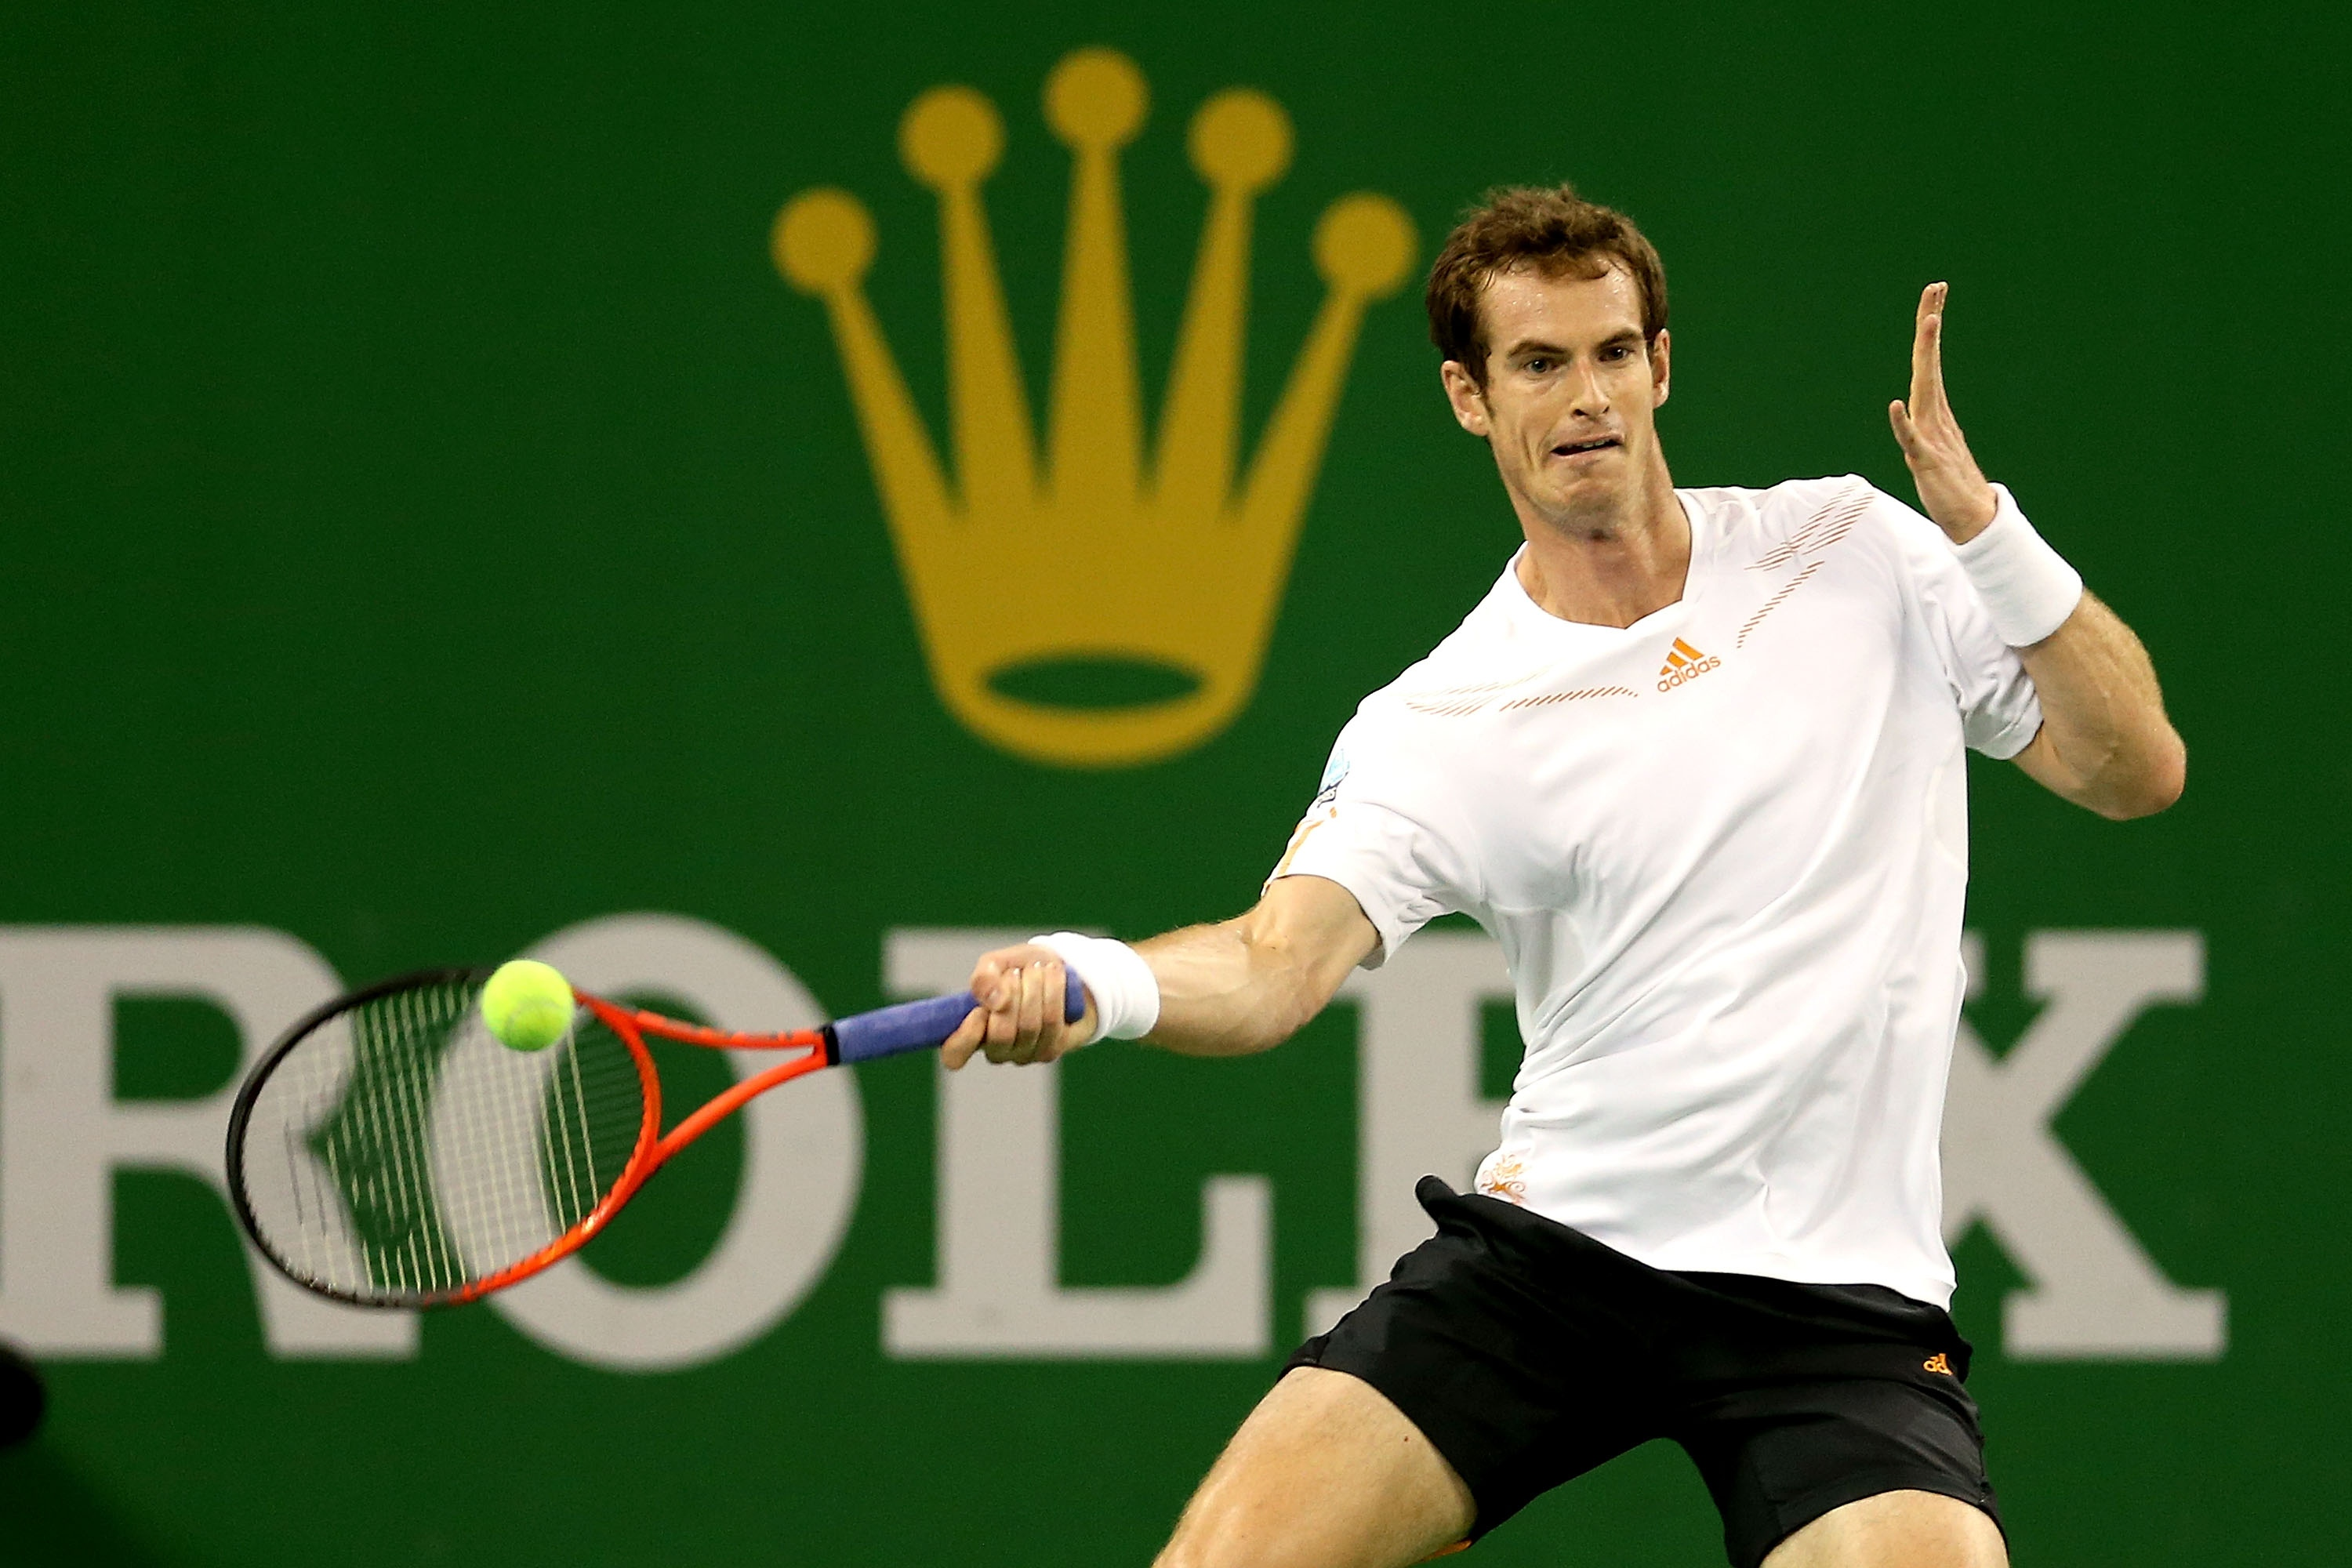 https://i2.wp.com/media.zenfs.com/en_us/News/gettyimages.com/2012-shanghai-rolex-masters-day-20121012-040614-307.jpg